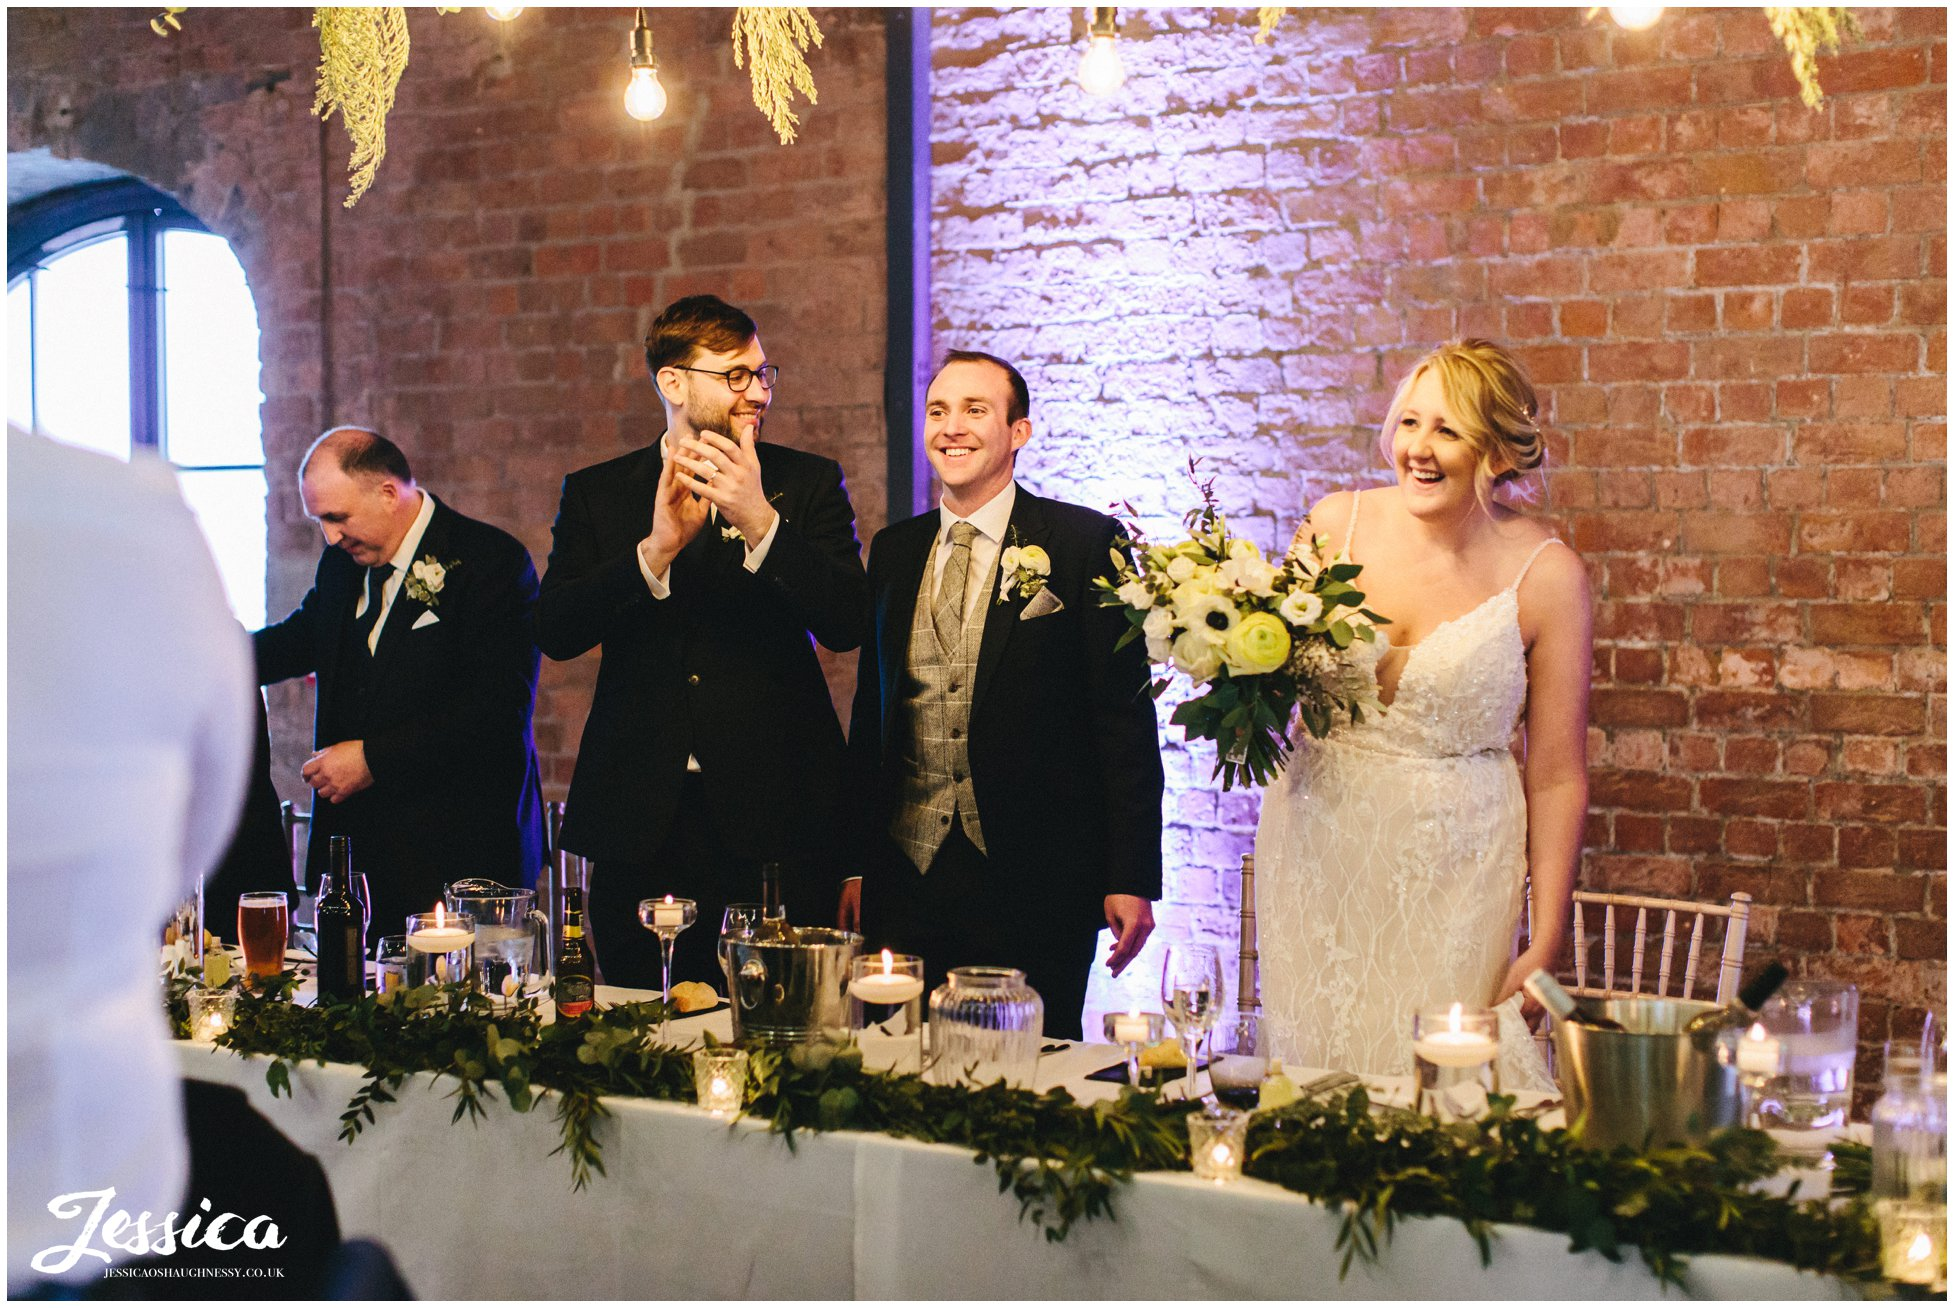 the bride & groom take their places at the top table